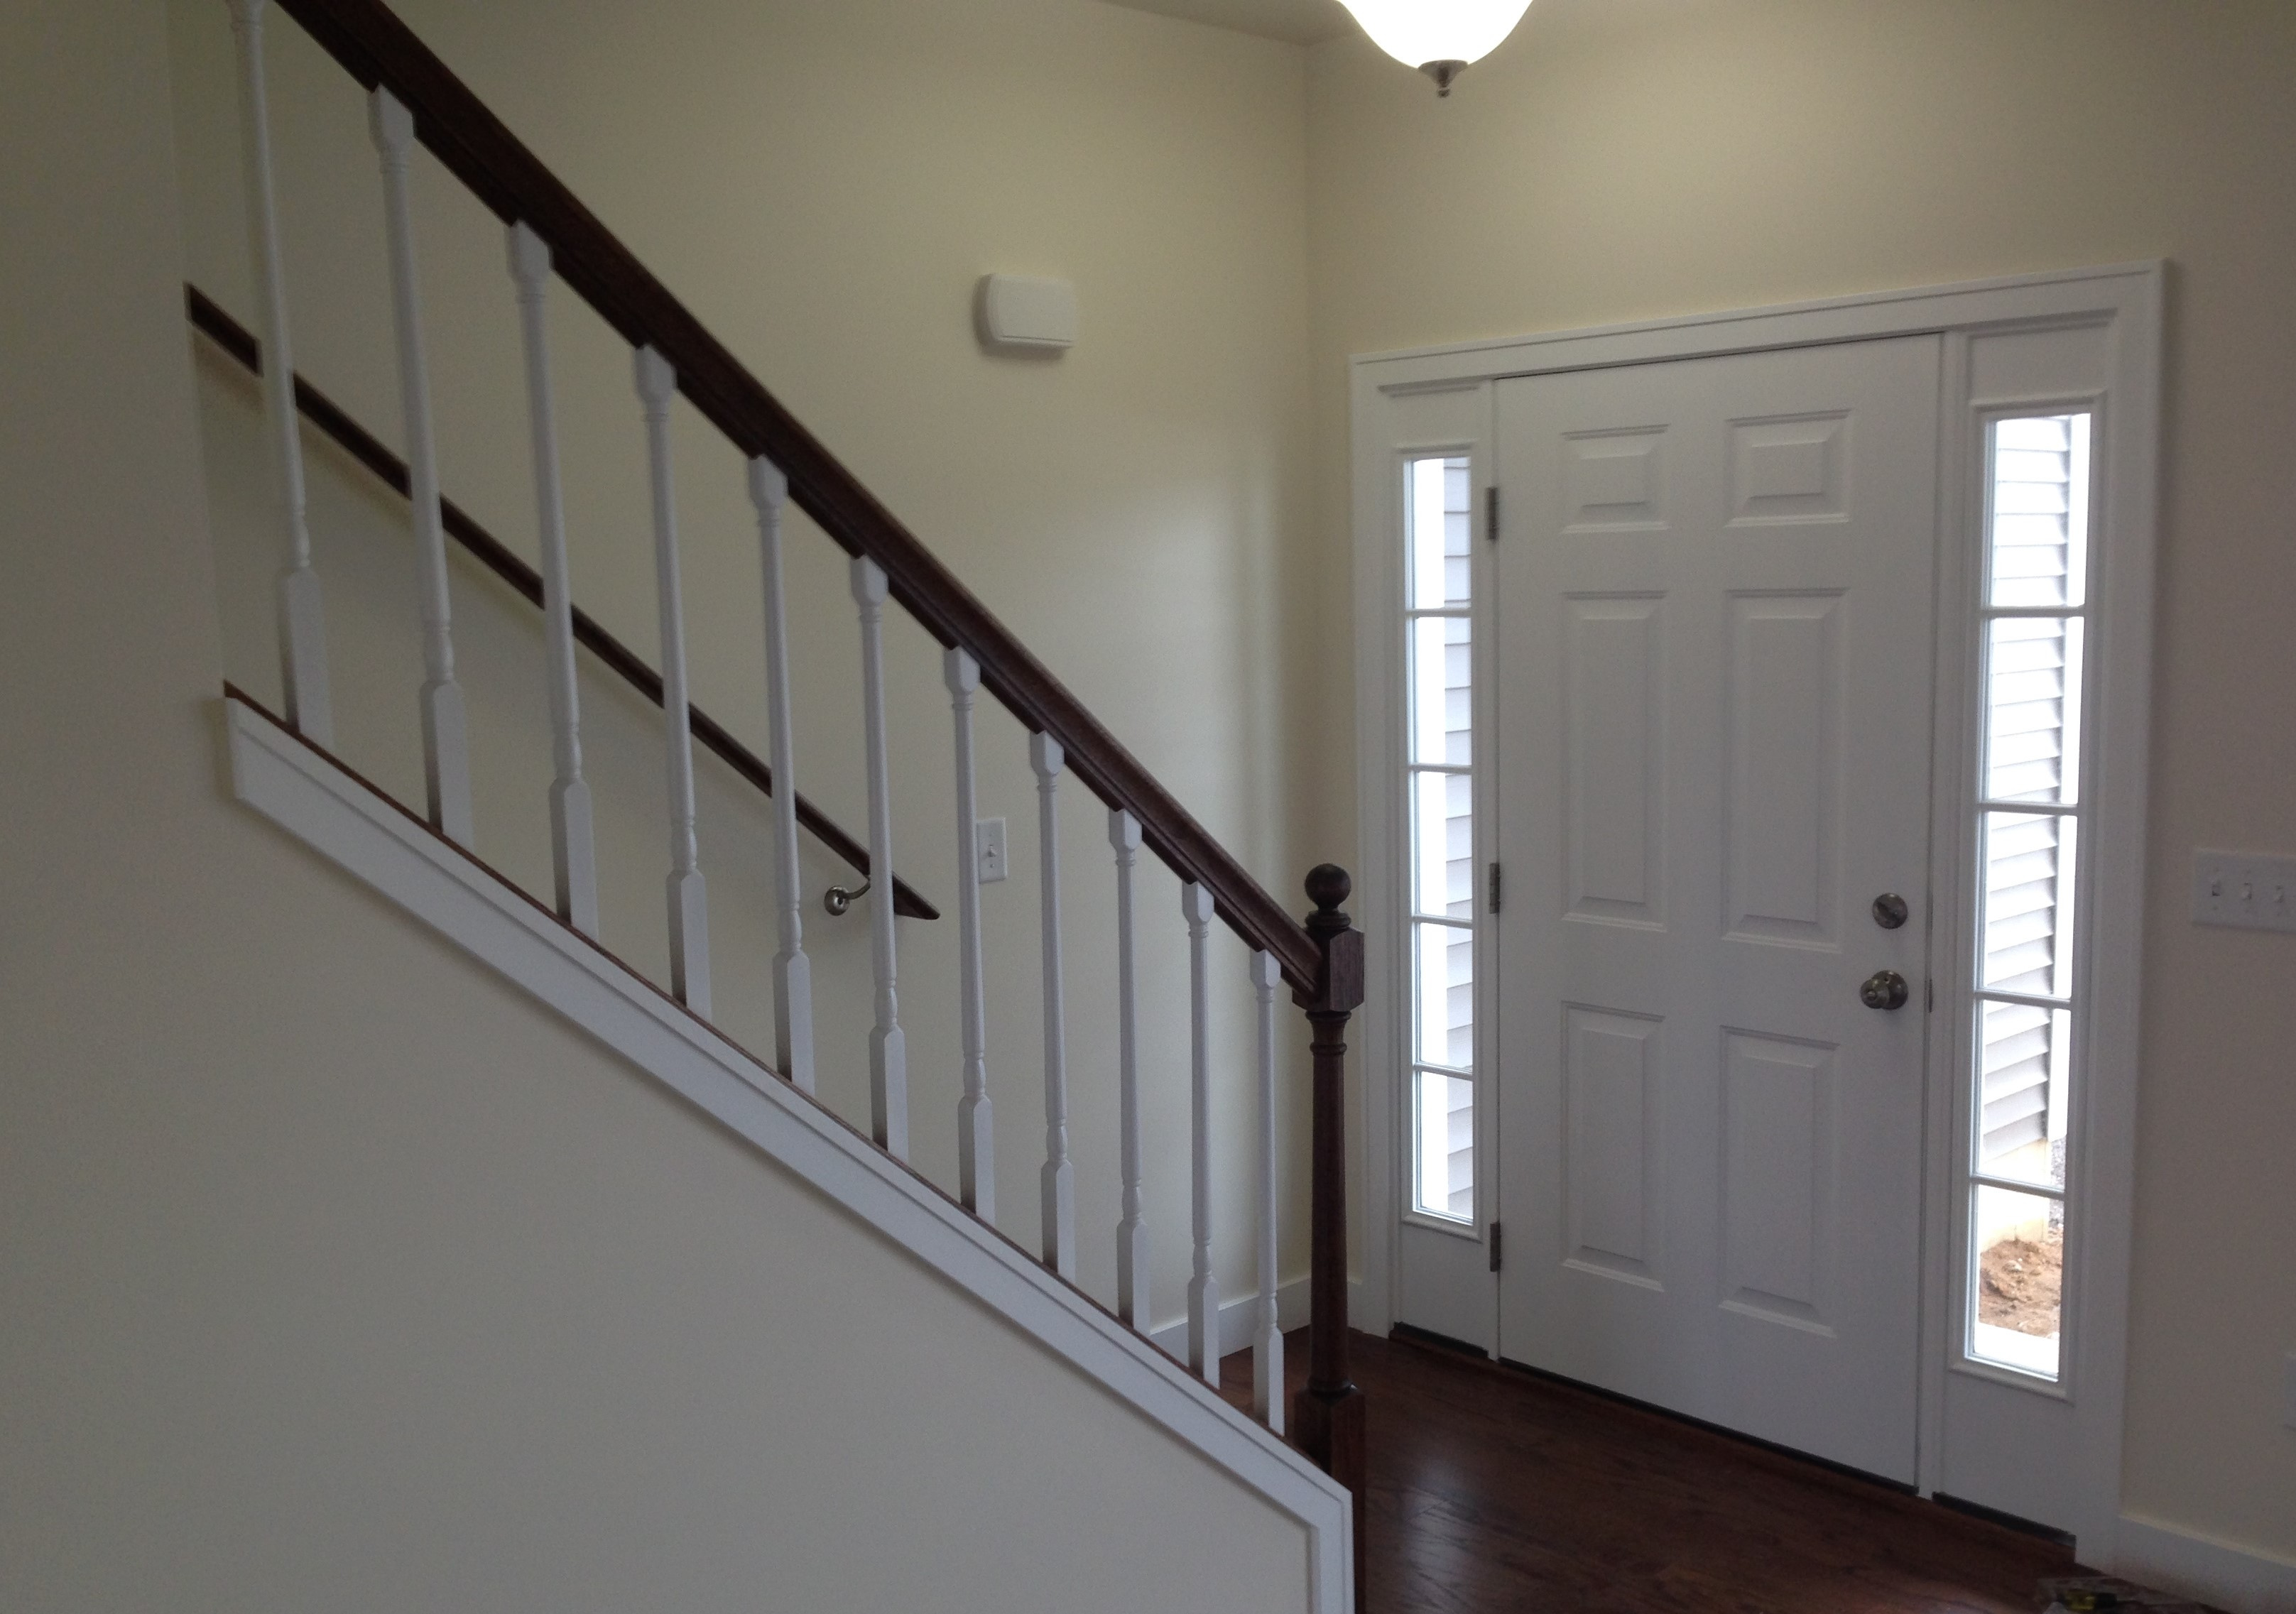 Staircase and Entryway